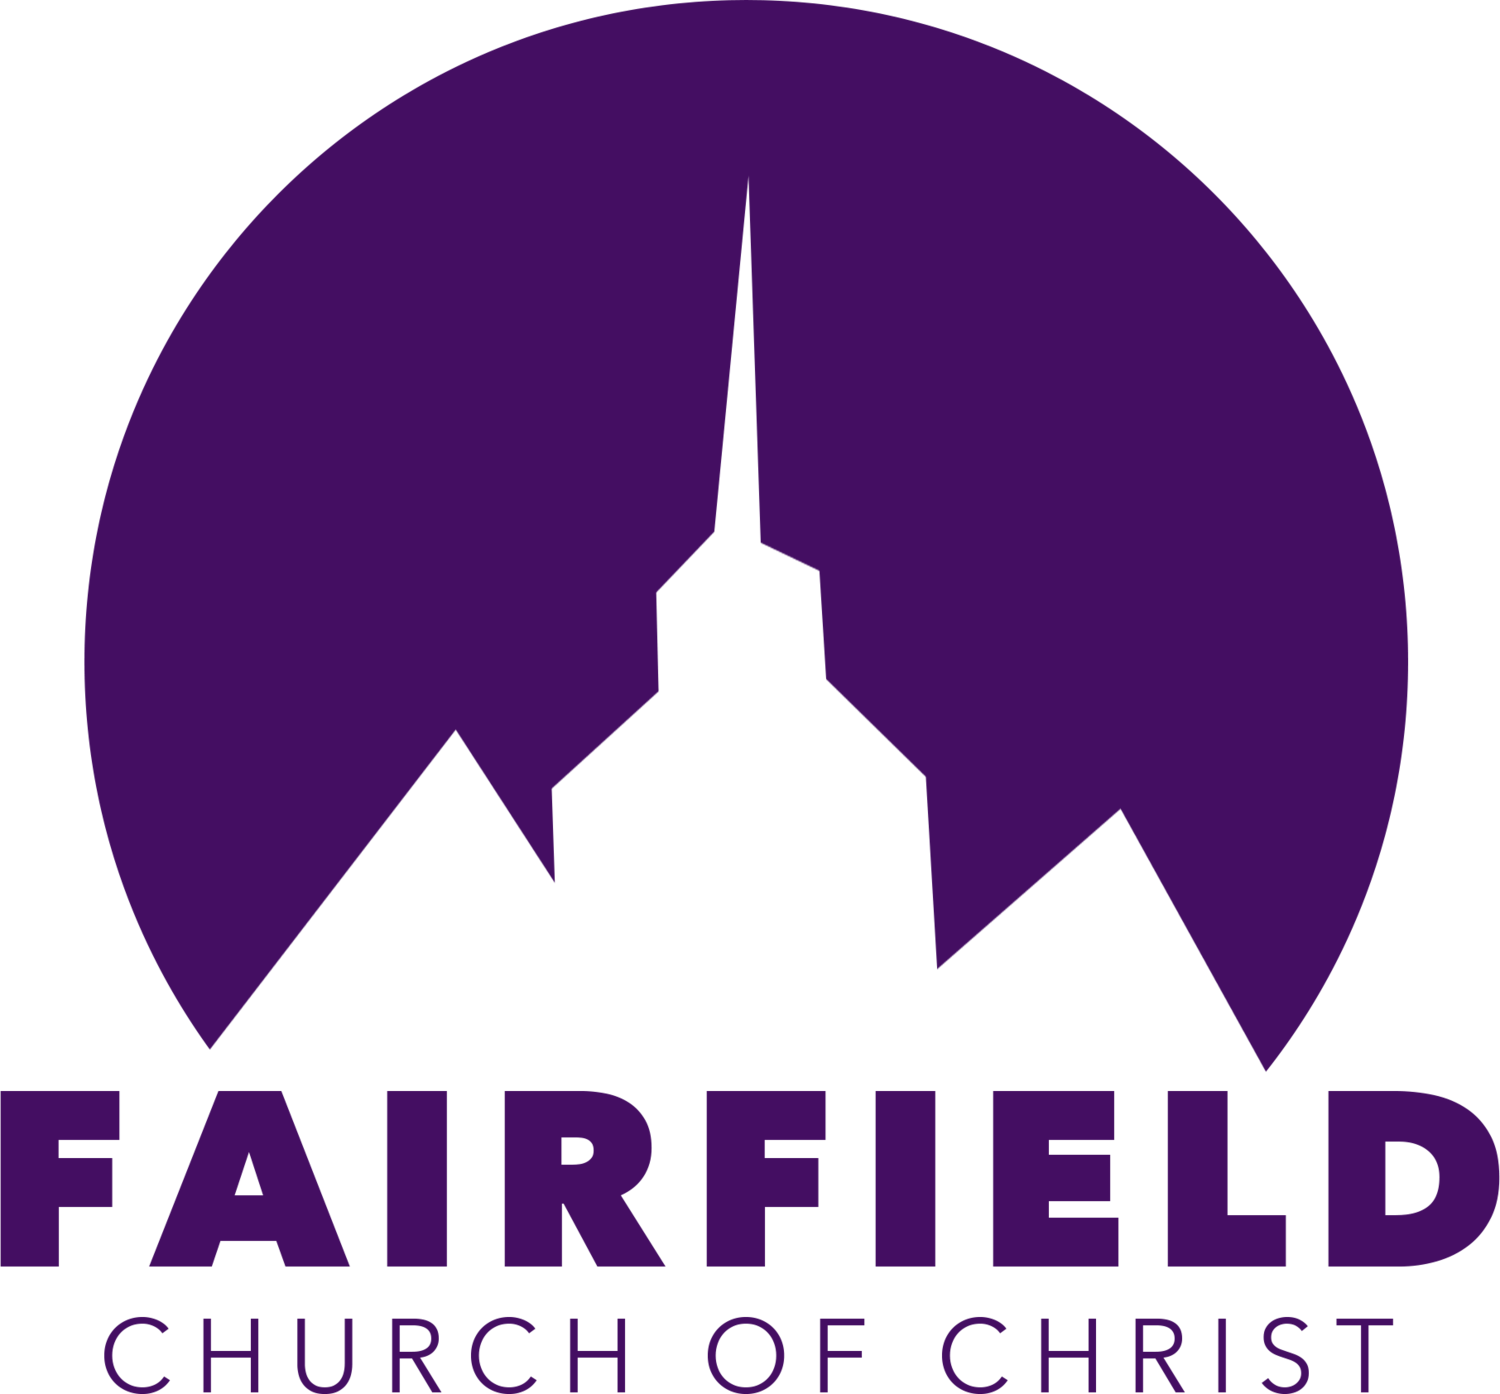 Fairfield Church of Christ